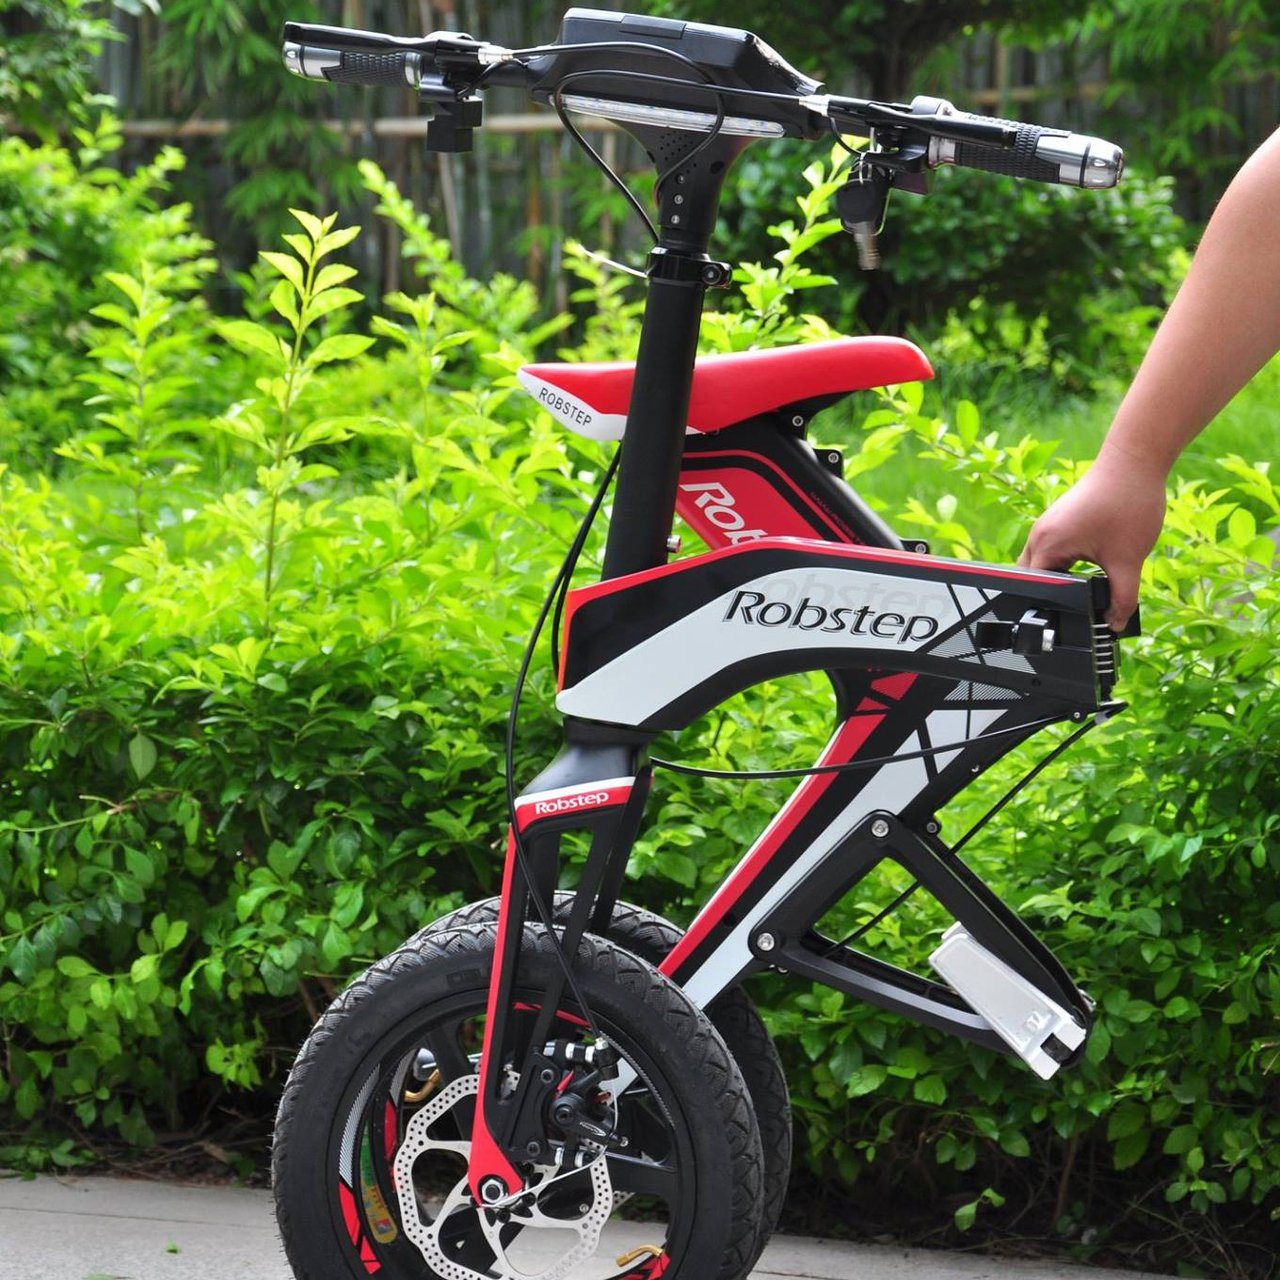 Robstep X1 X1S eBike Scooter